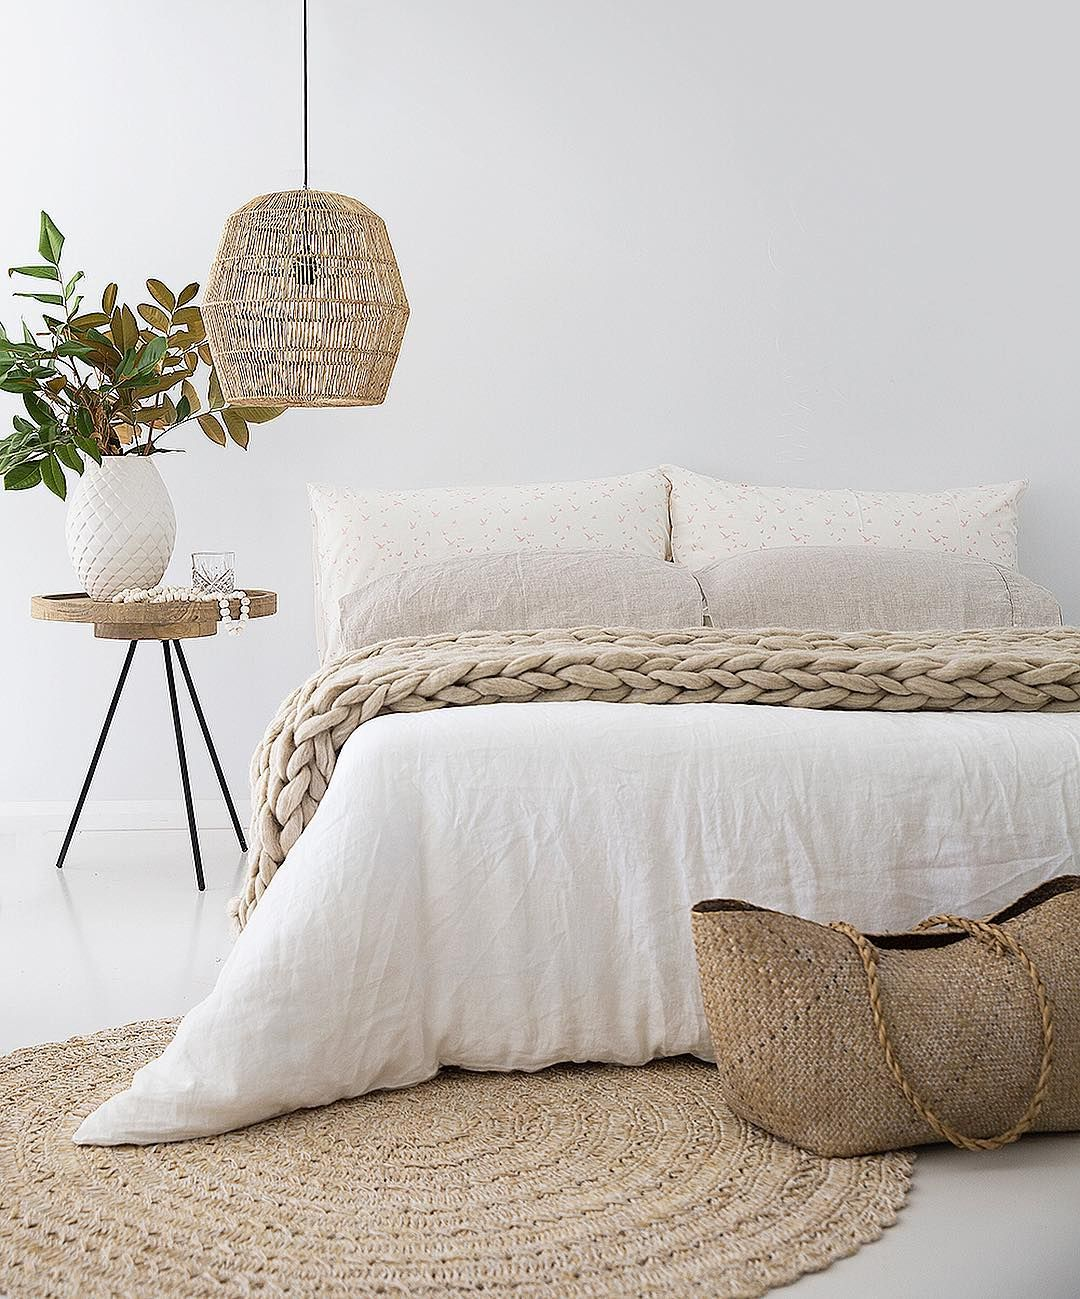 Natural Bedroom Decorating Ideas: Bedroom With White Linens And Woven Basket Lighting